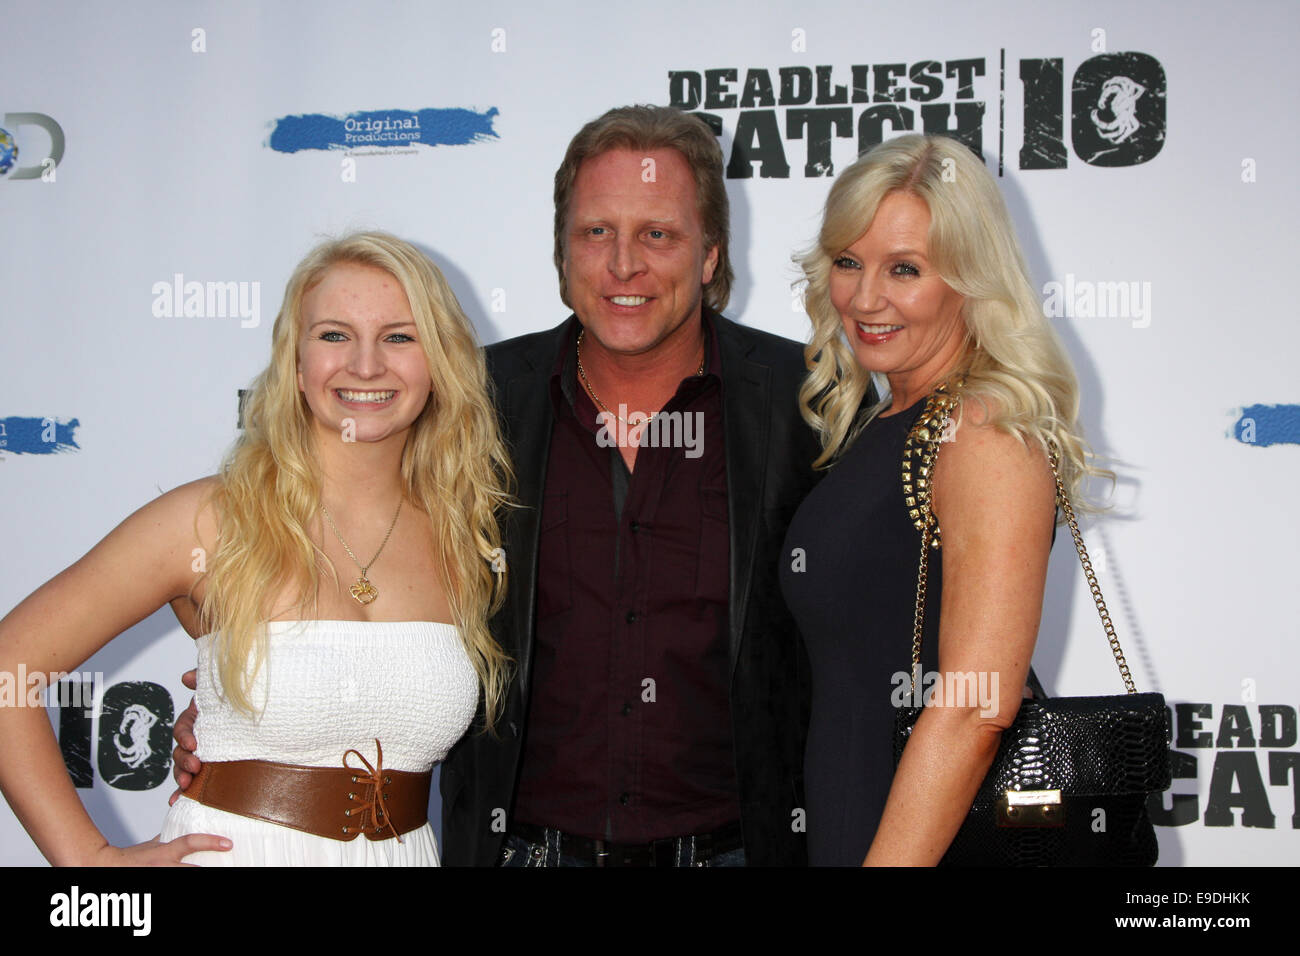 Premiere Screening Of Deadliest Catch Season 10 Arrivals